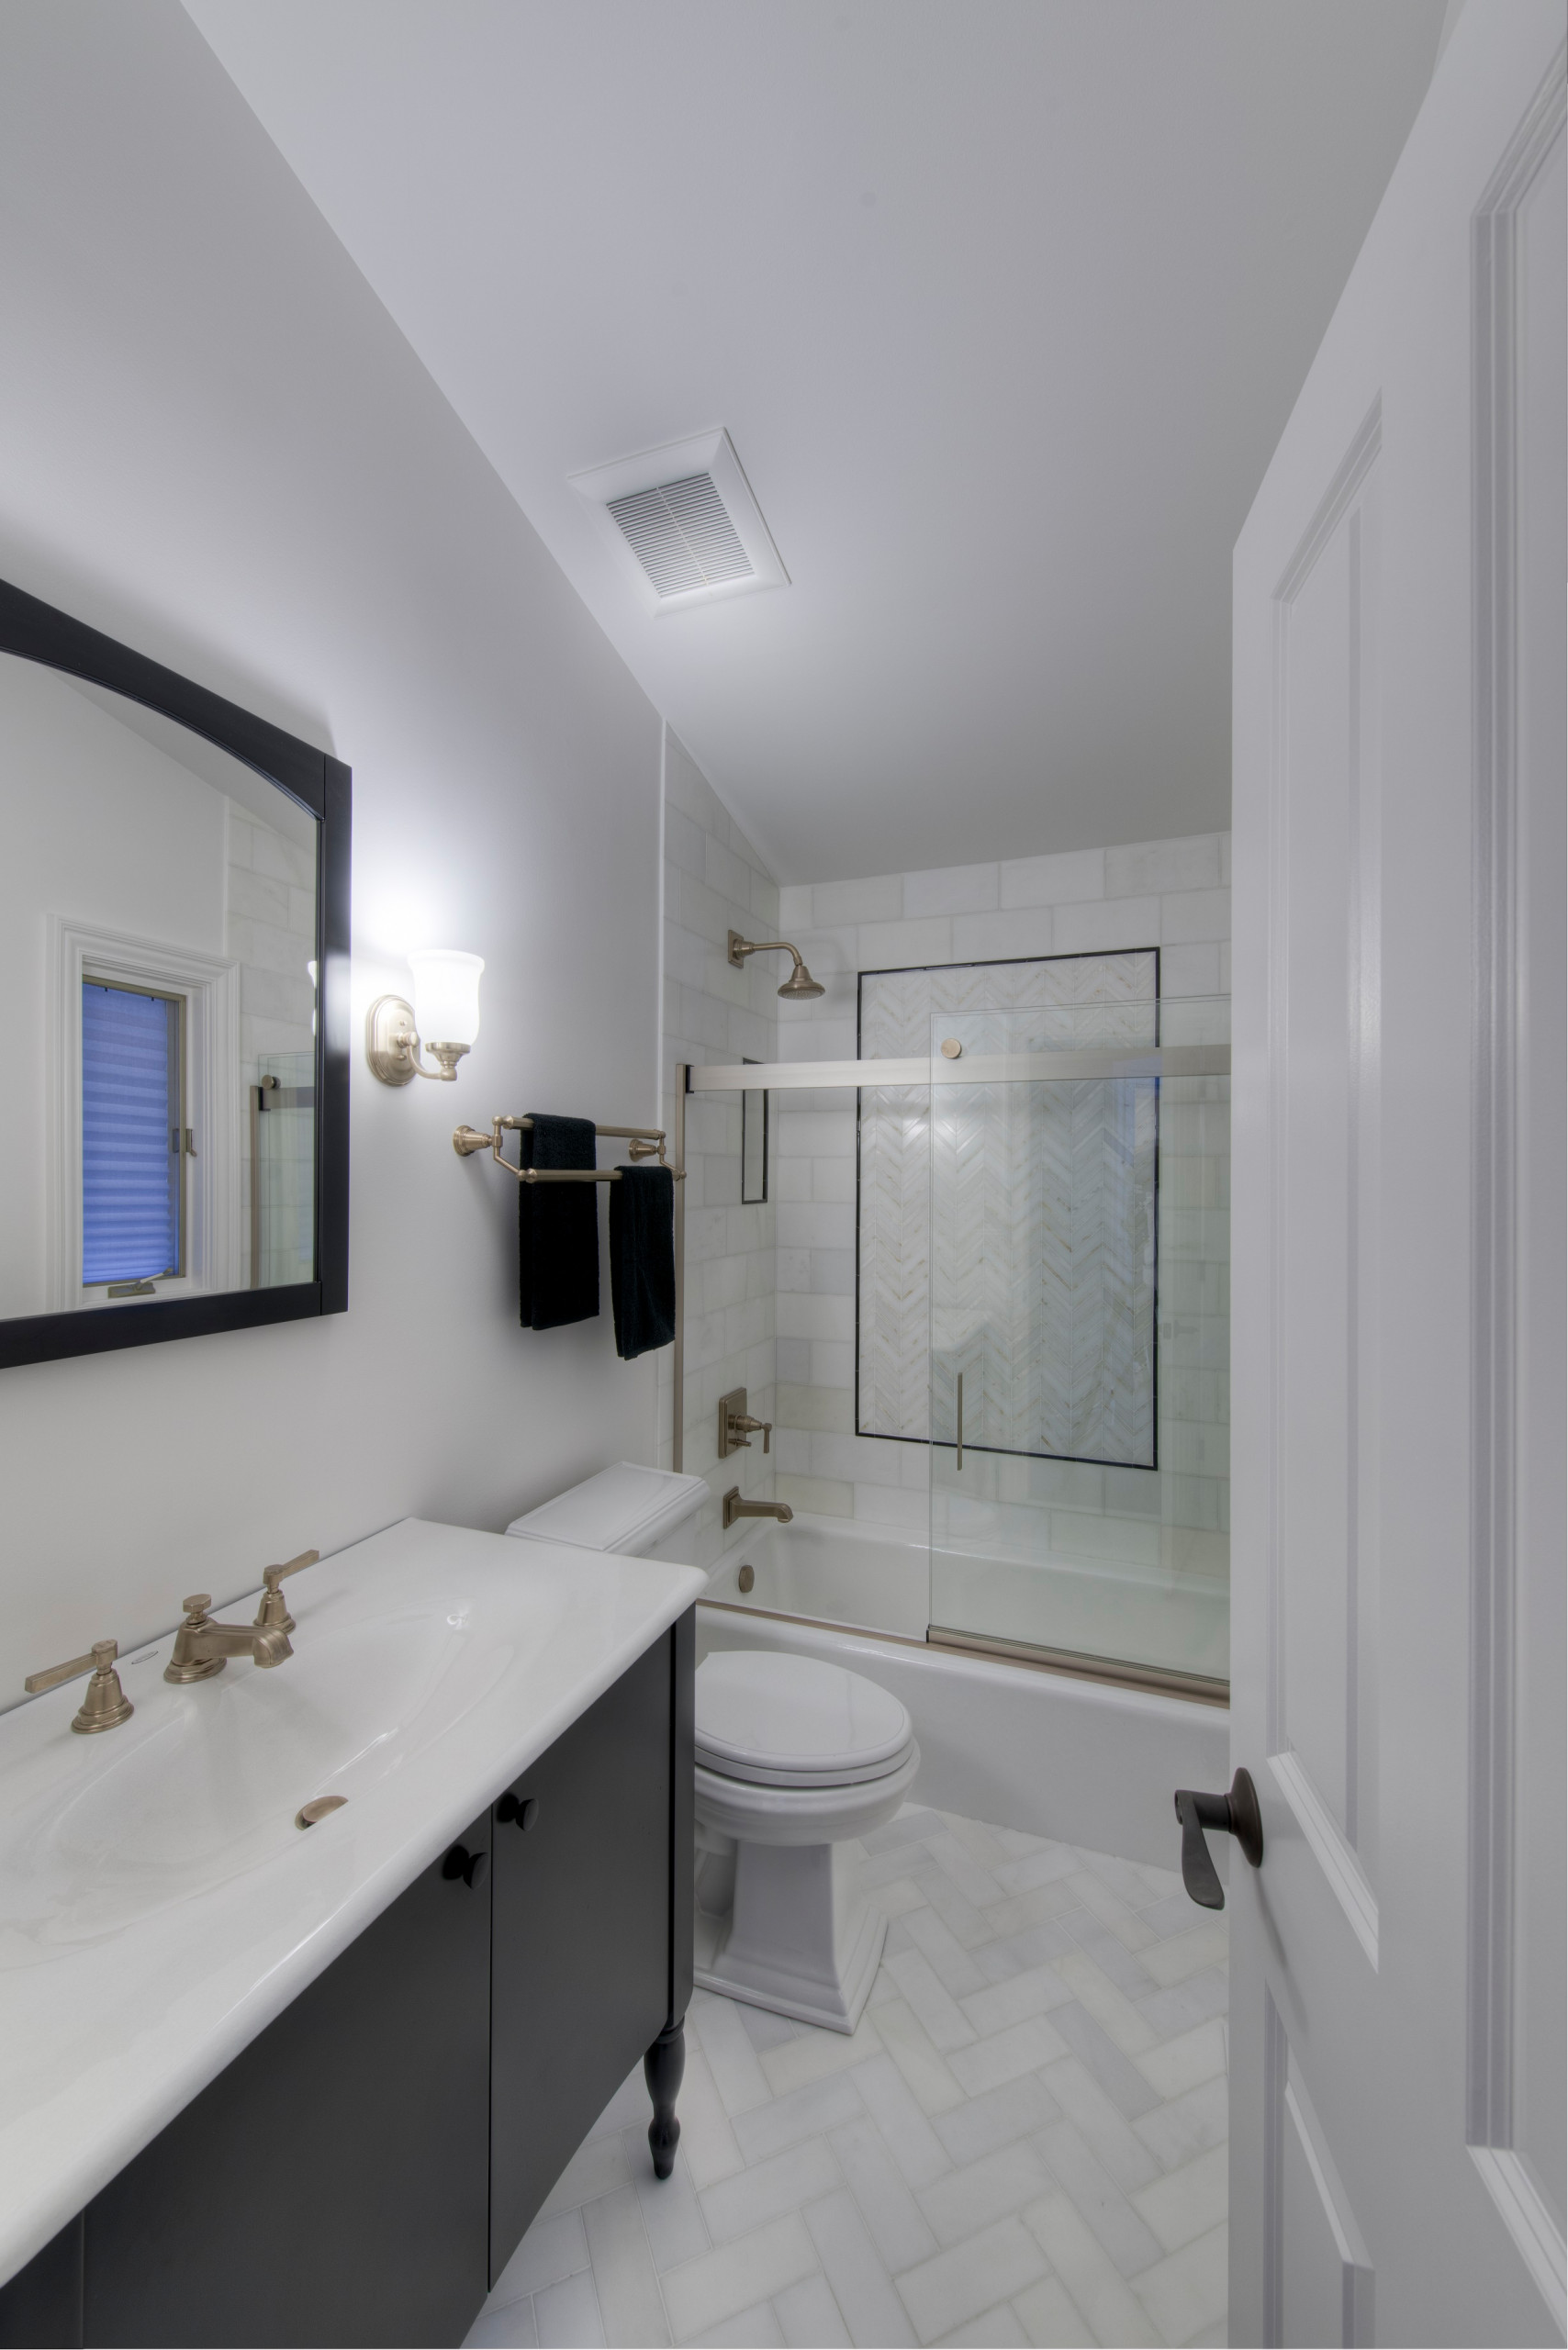 75 Beautiful Traditional Bathroom Pictures Ideas April 2021 Houzz